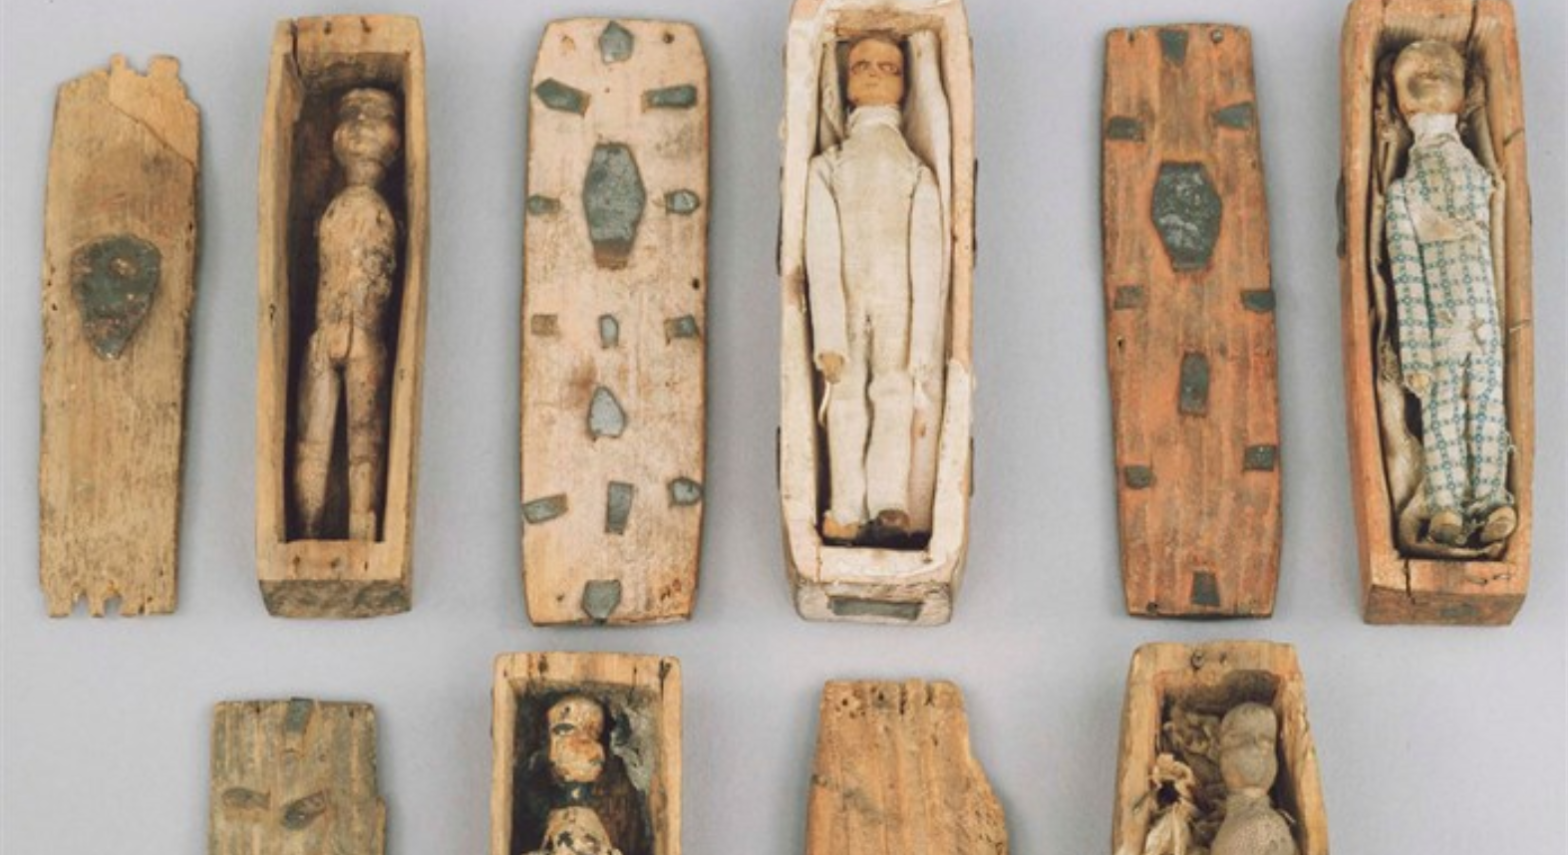 The mystery of the miniature coffins found on Arthur's Seat in Edinburgh